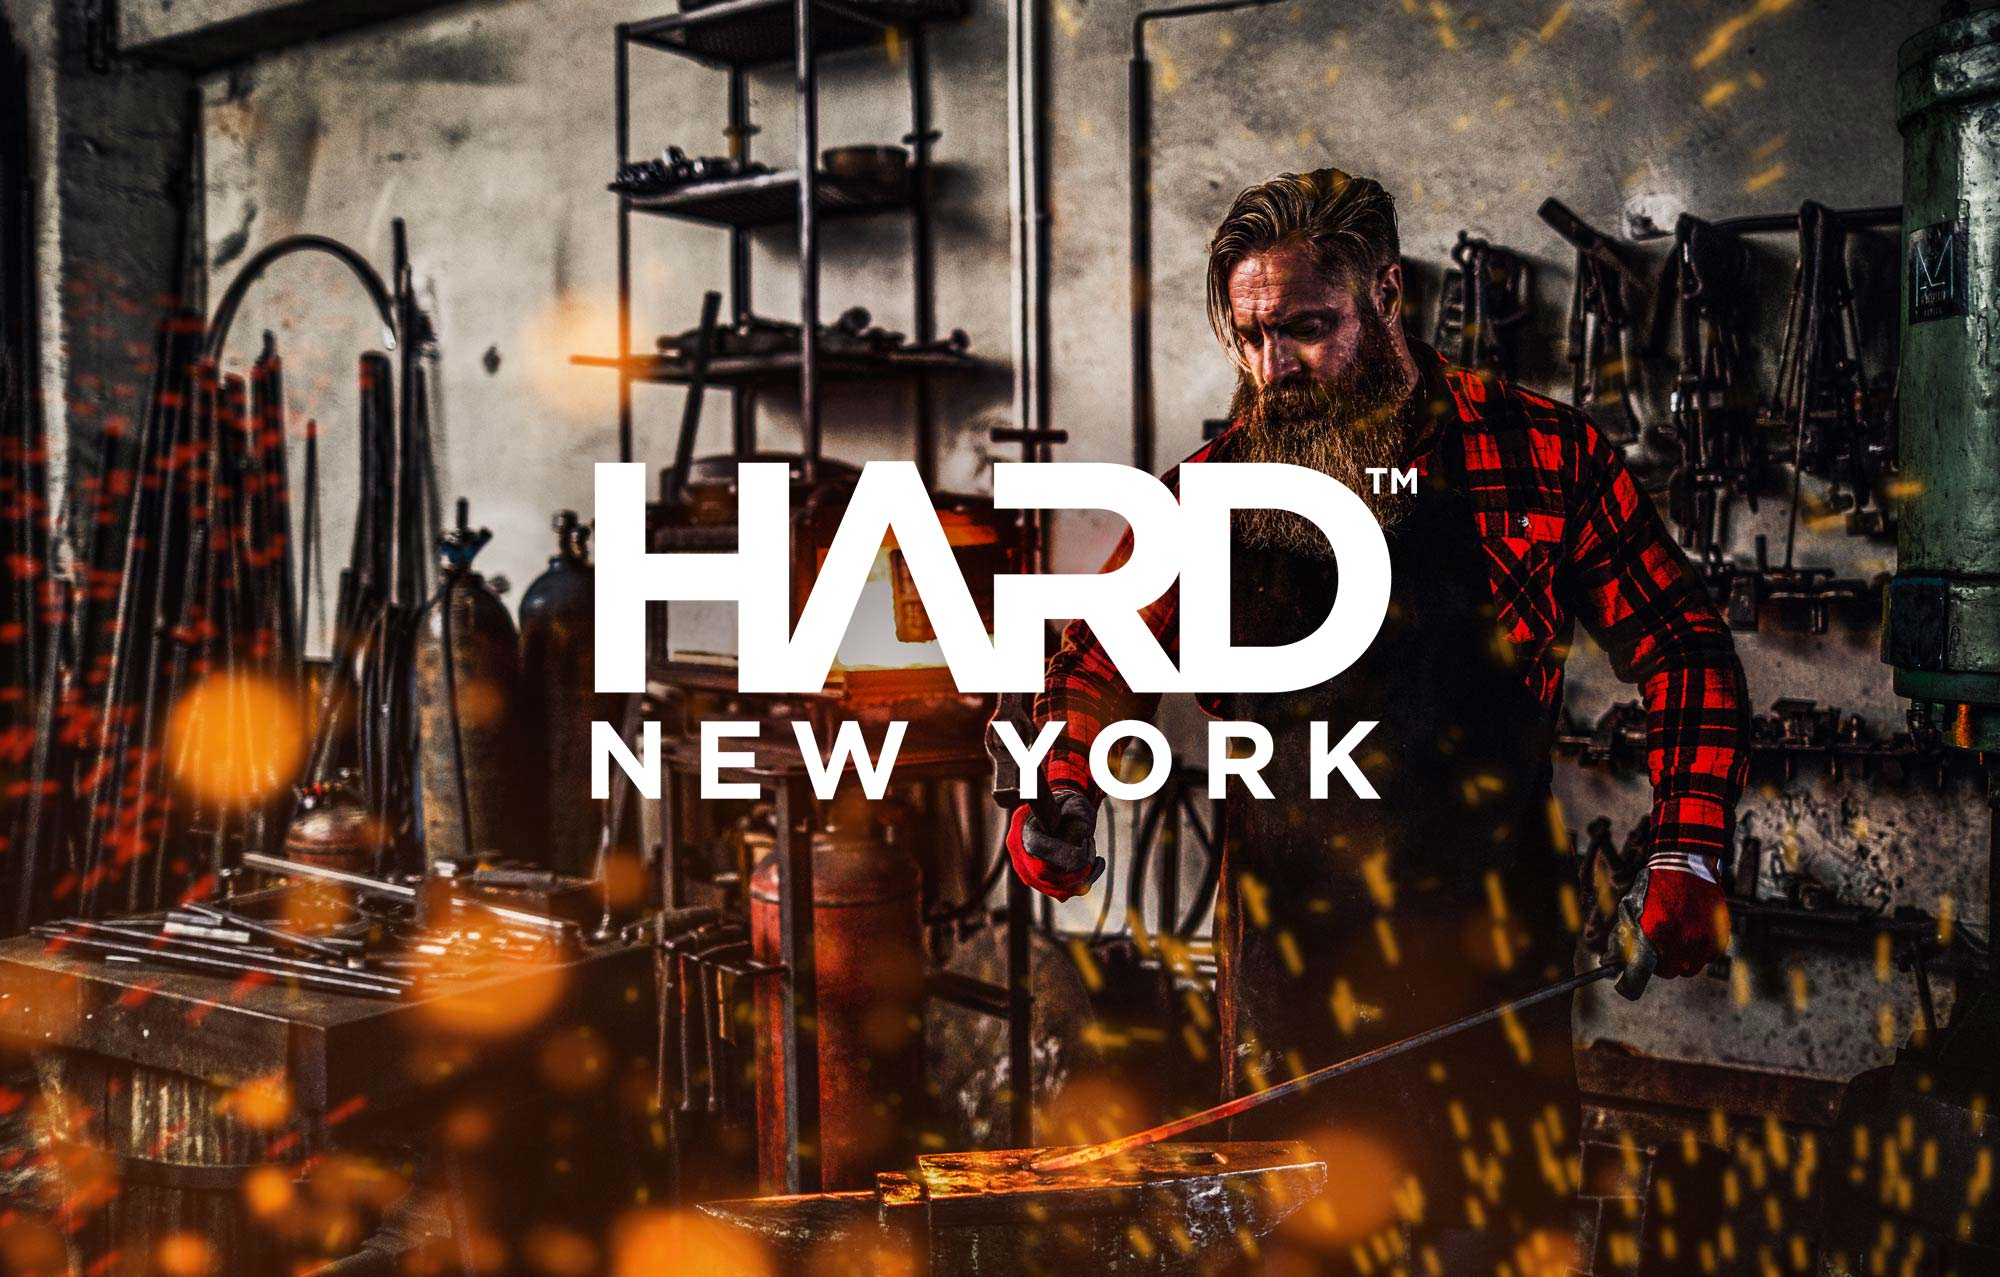 HARD NEW YORK Men's Accessories and Skincare